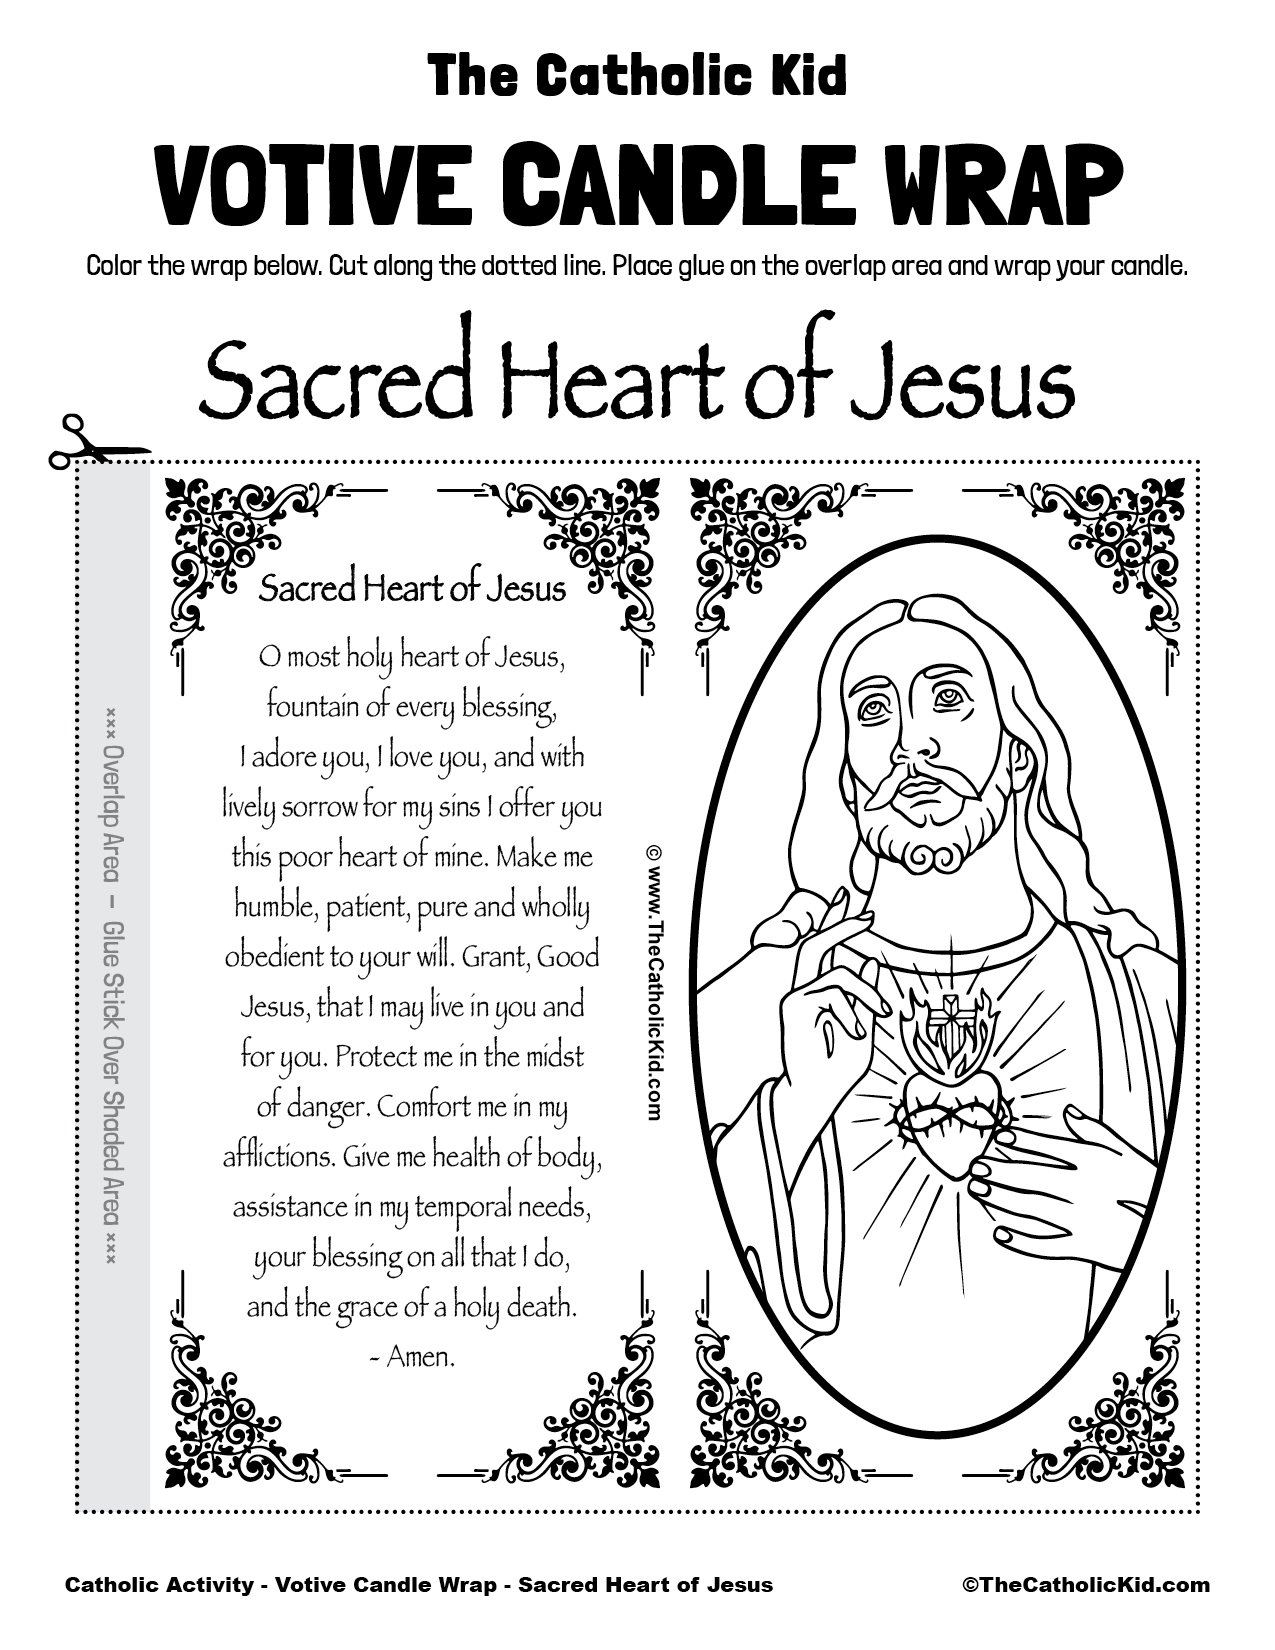 Free Printable Catholic Votive Candle Wrap Coloring Page Sacred Heart of Jesus